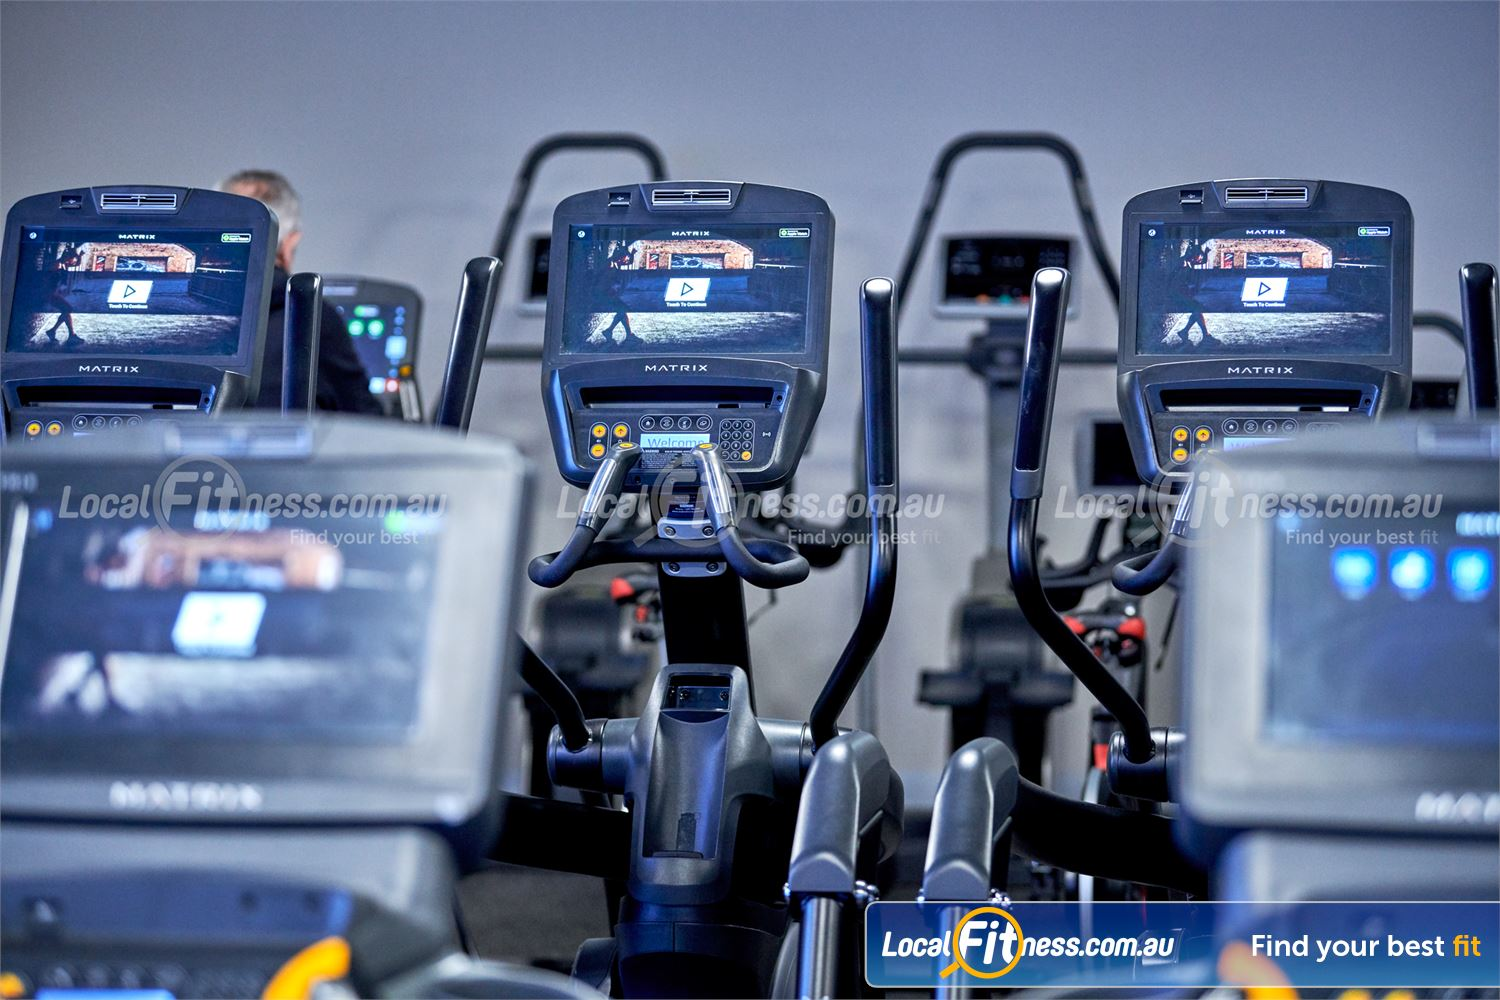 Fitness First Glen Waverley The latest MATRIX console where you can go on facebook, twitter, youtube and more.